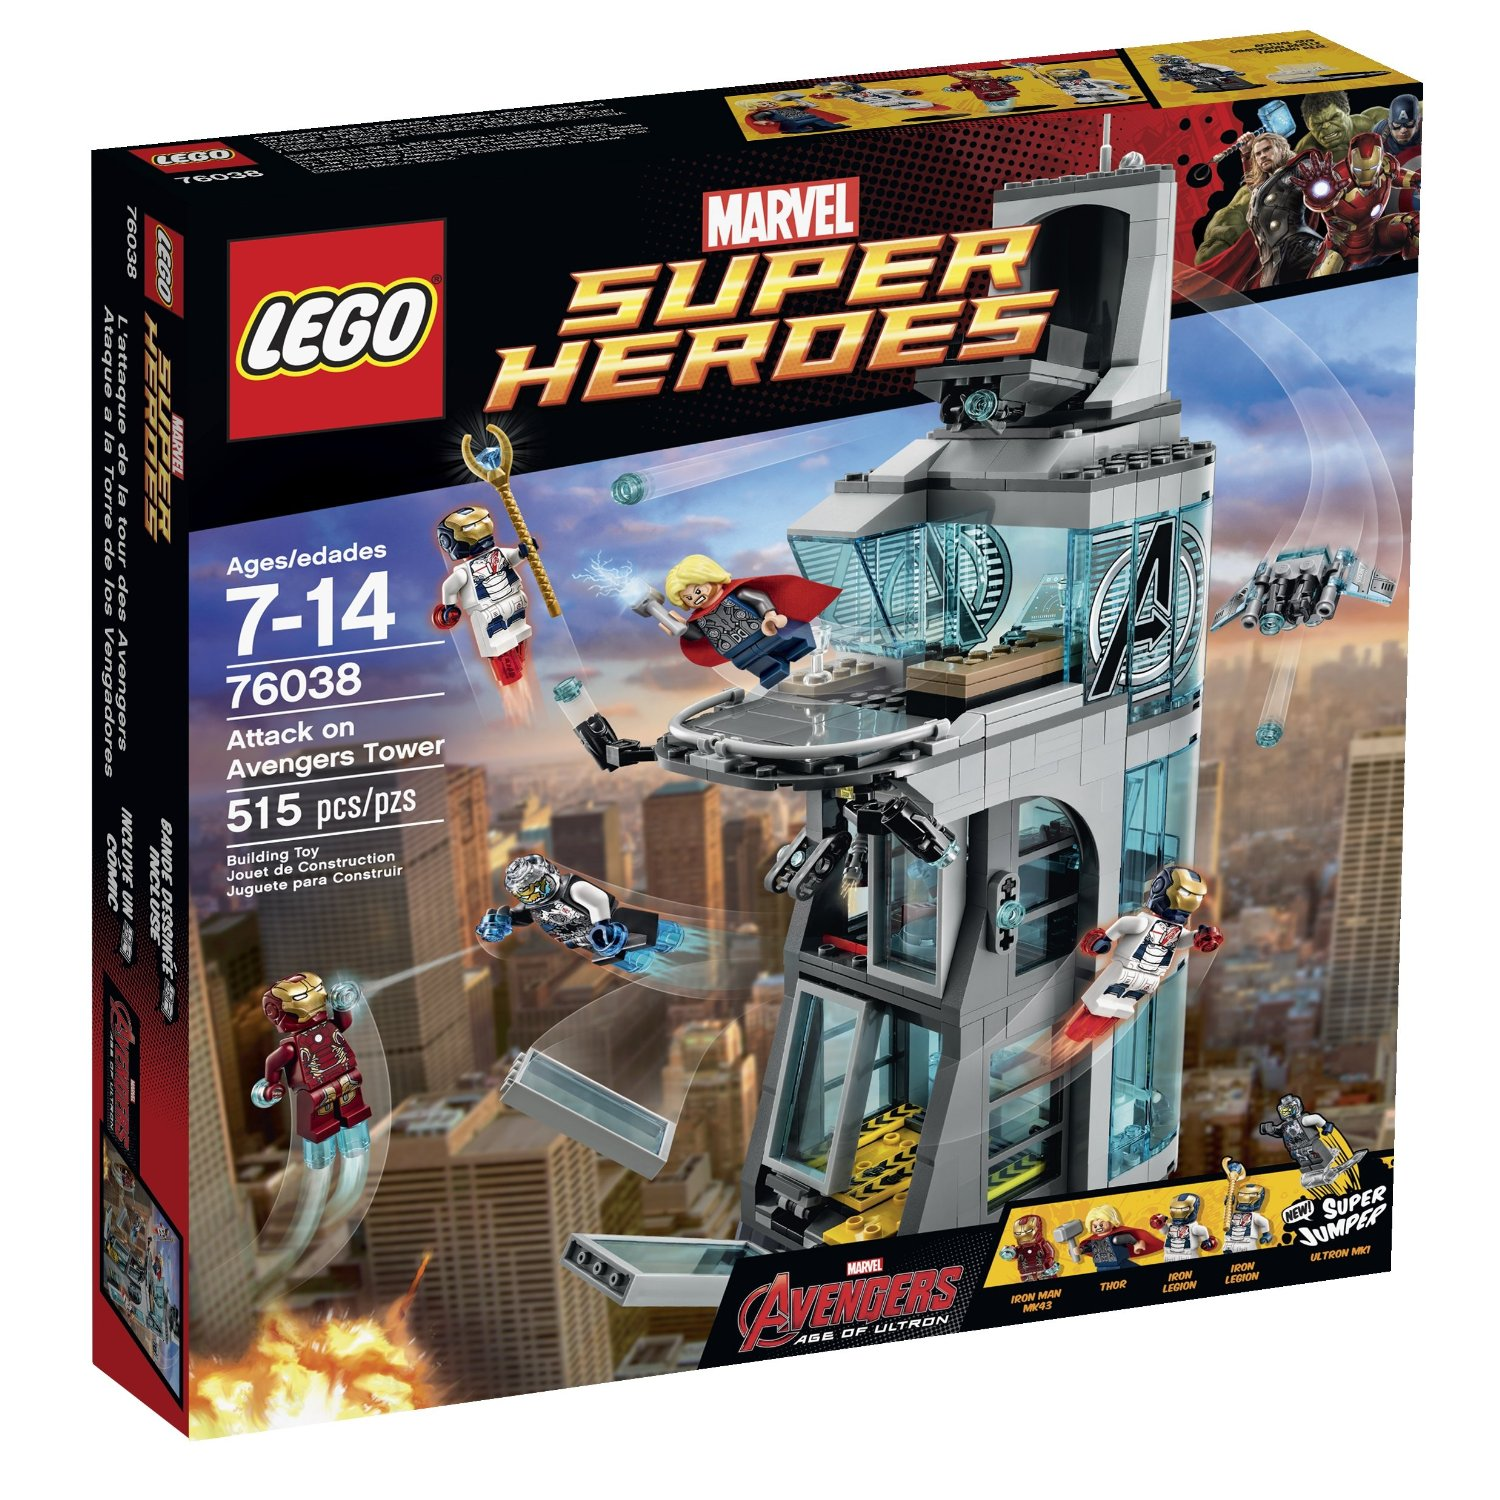 The Best List Toys For Boys Under 10 GirlieGirl Army